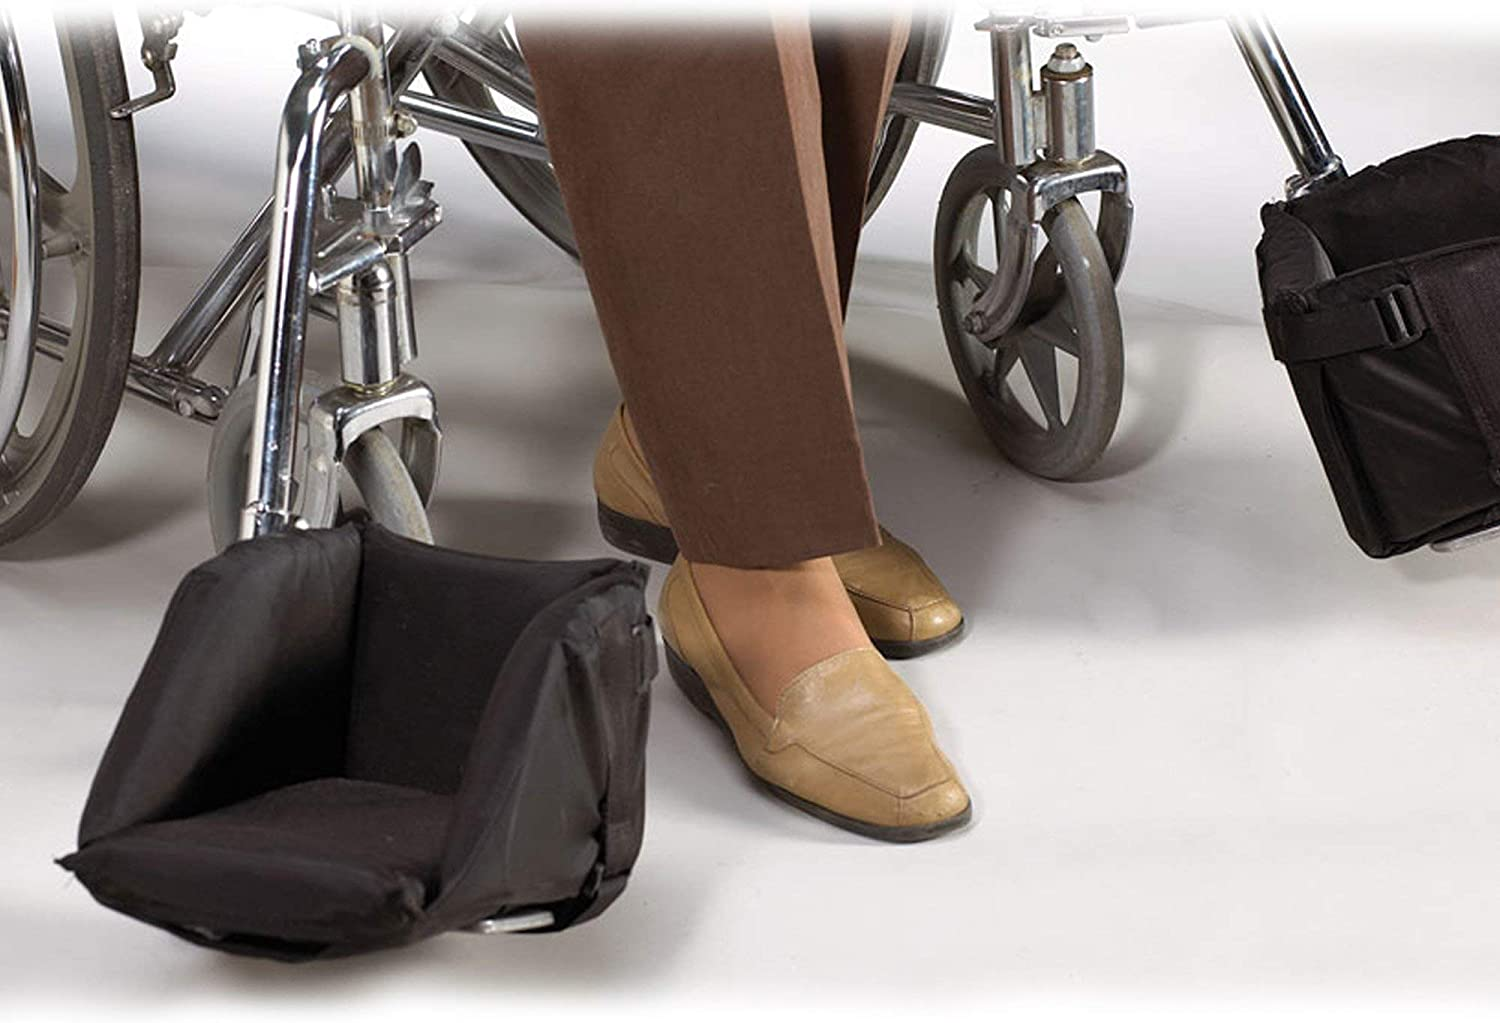 Skil-Care Swing-Away Foot Support Jacksonville Mall Left Unive Right - # 703472 shipfree